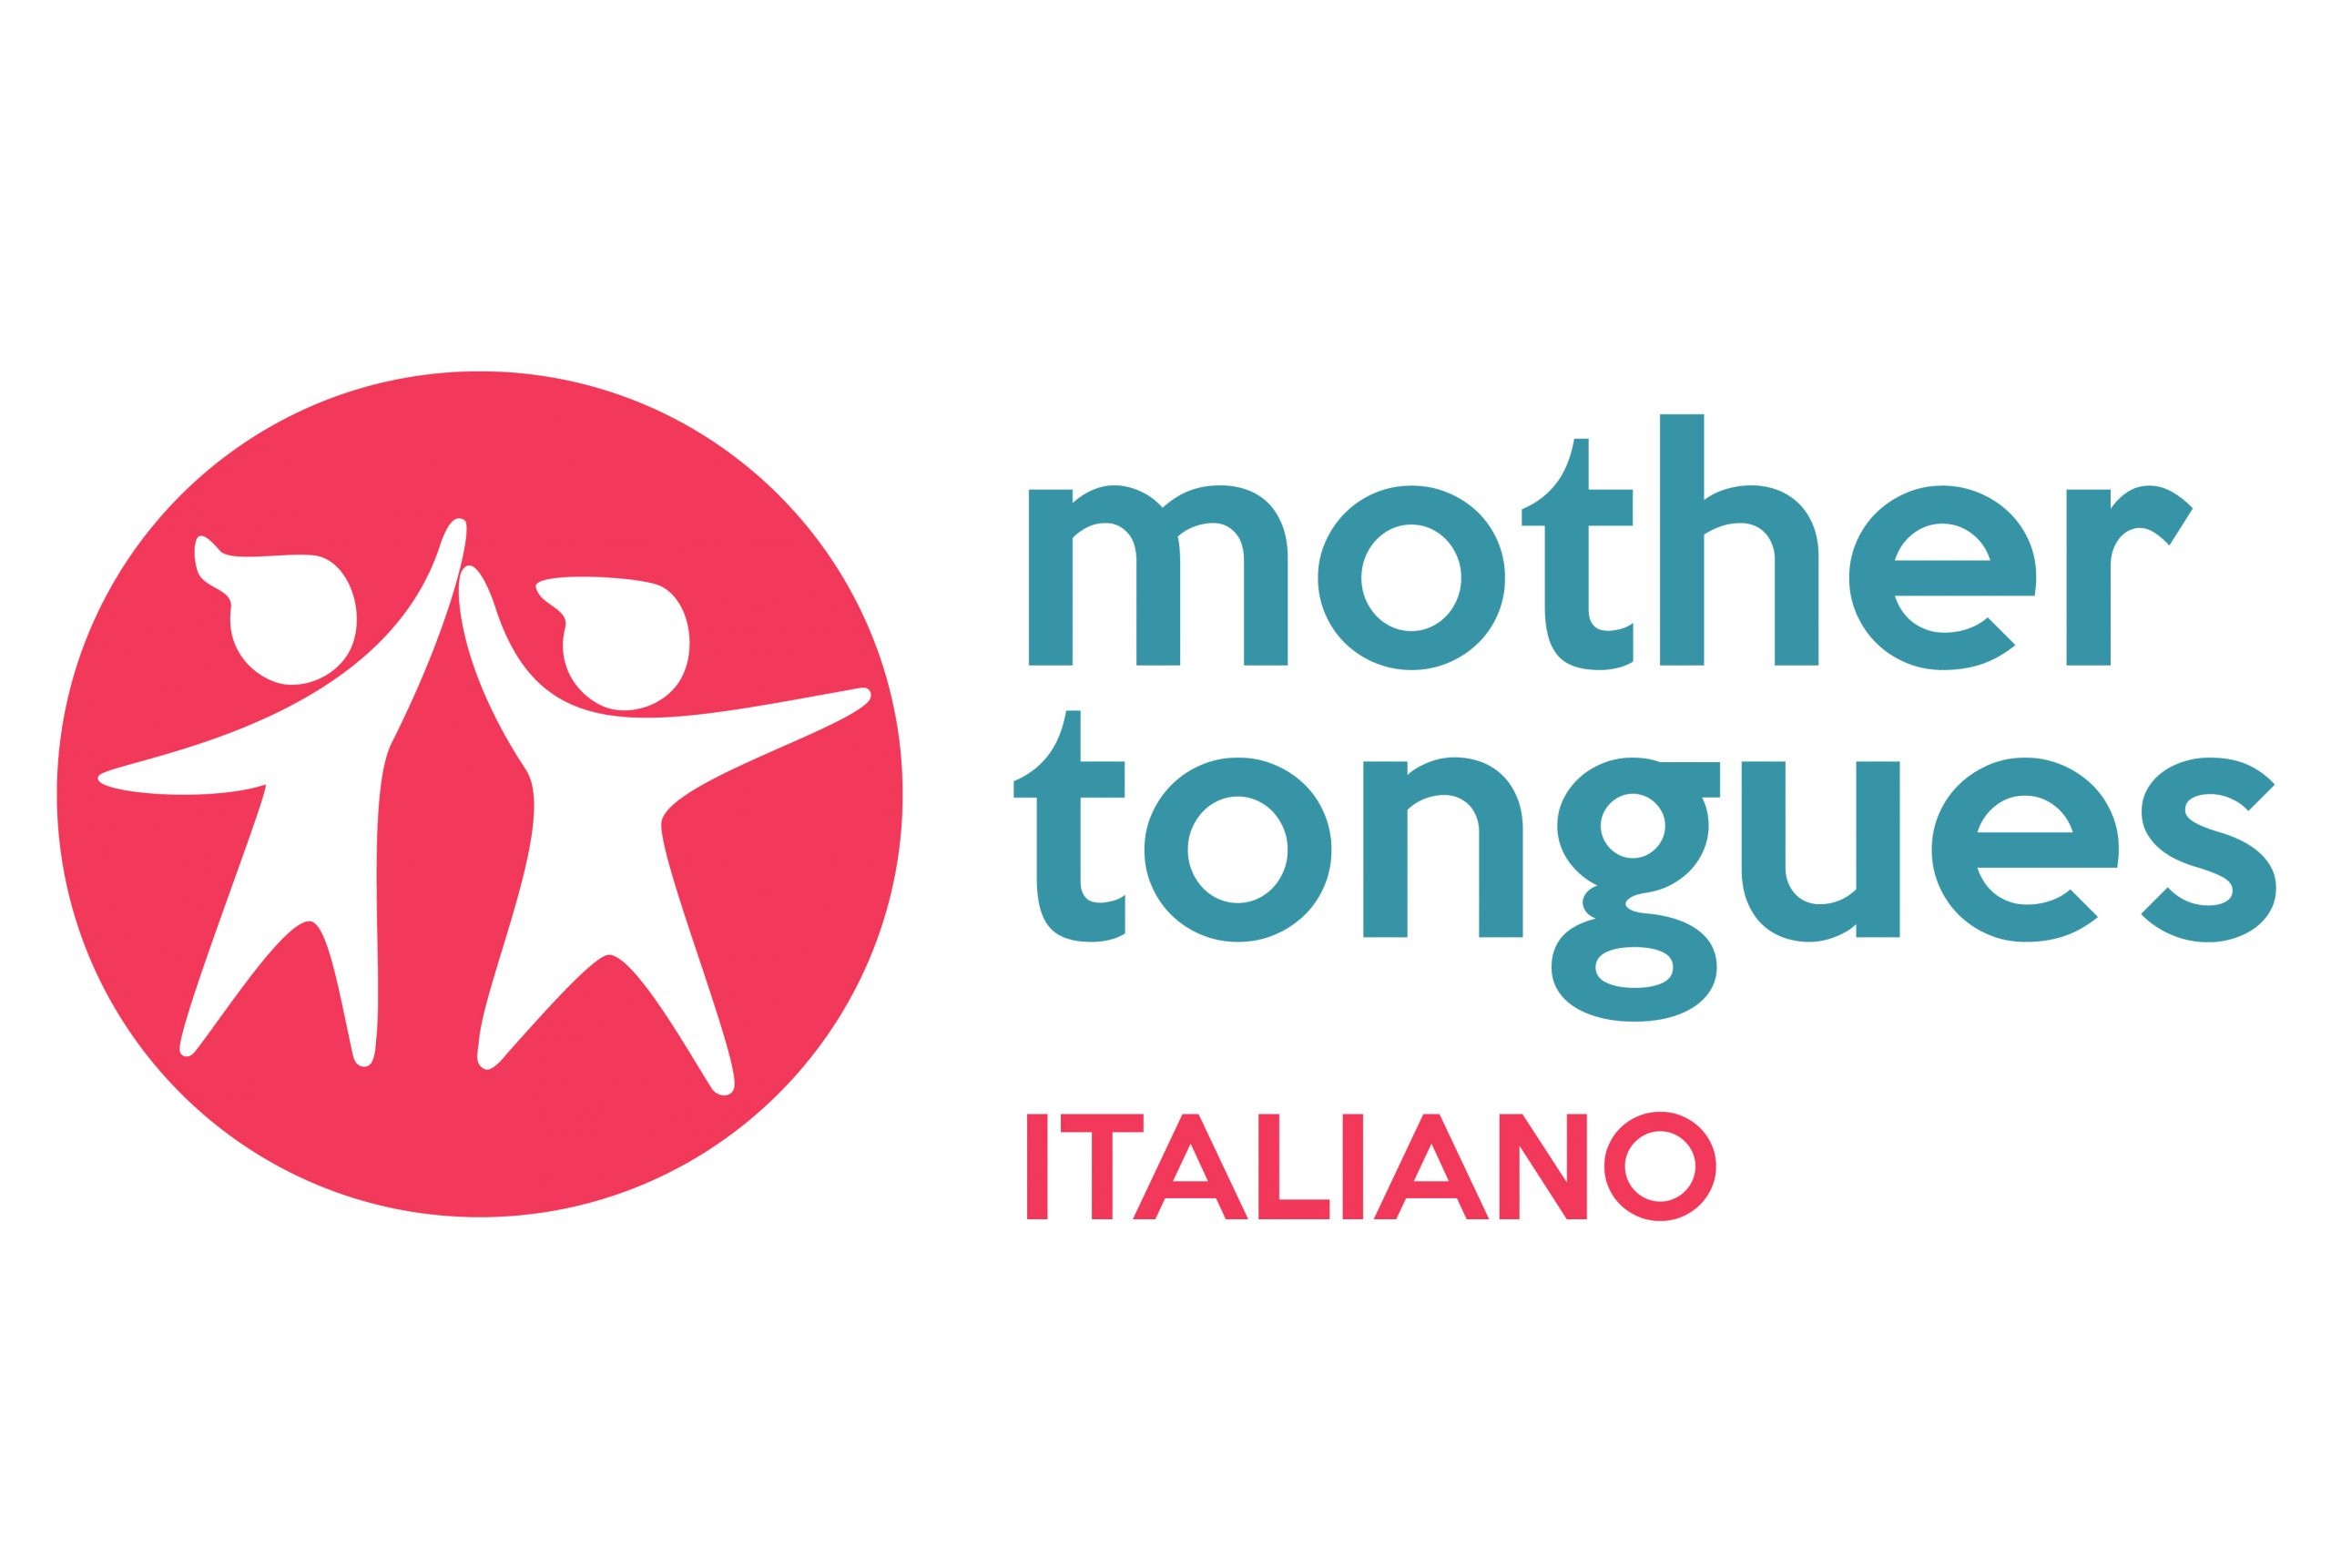 mother tongues ita